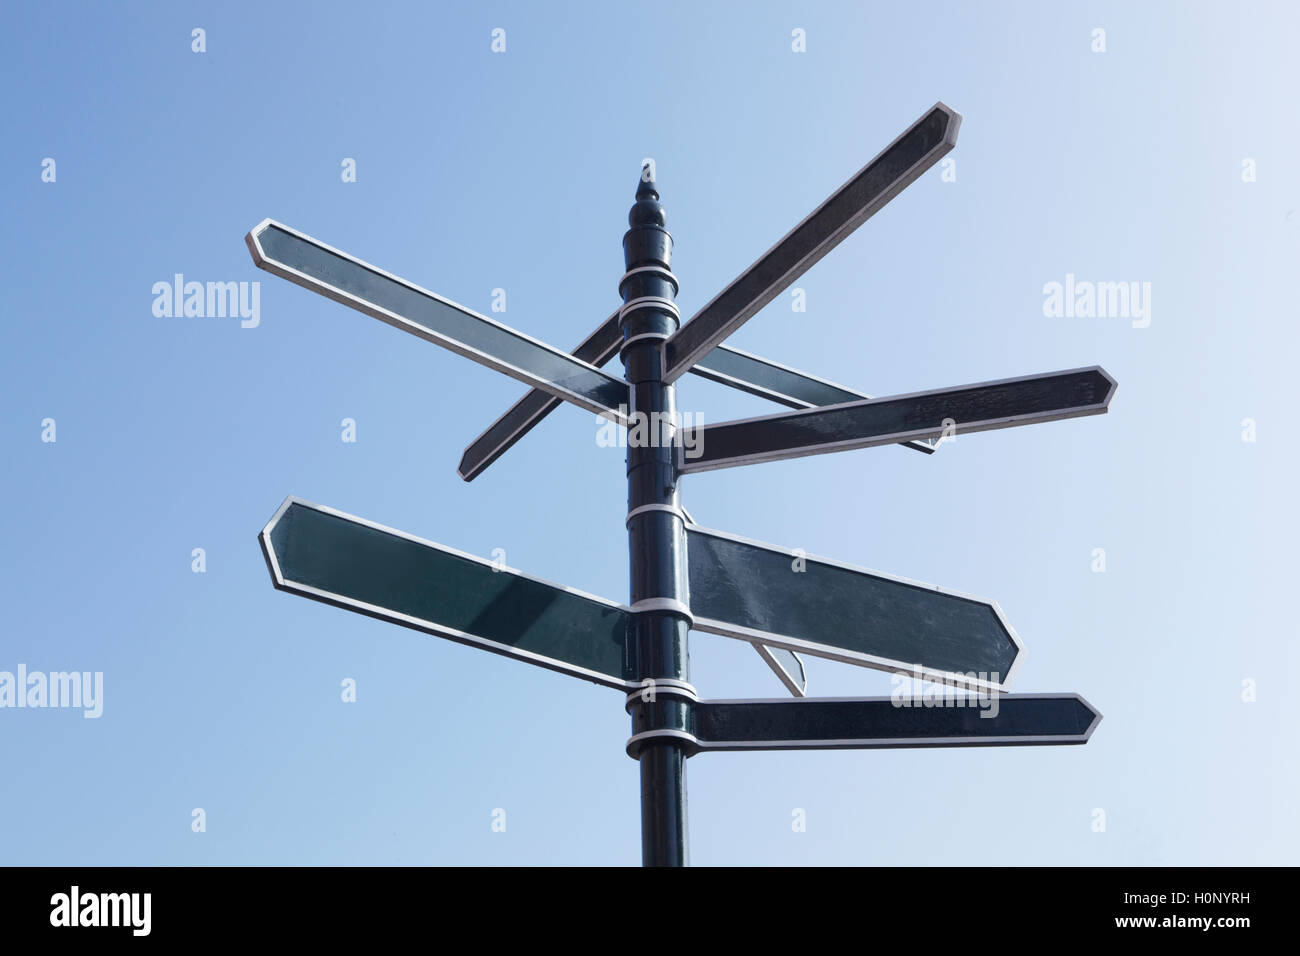 Signpost Pointing In Many Directions Against Blue Sky - Stock Image